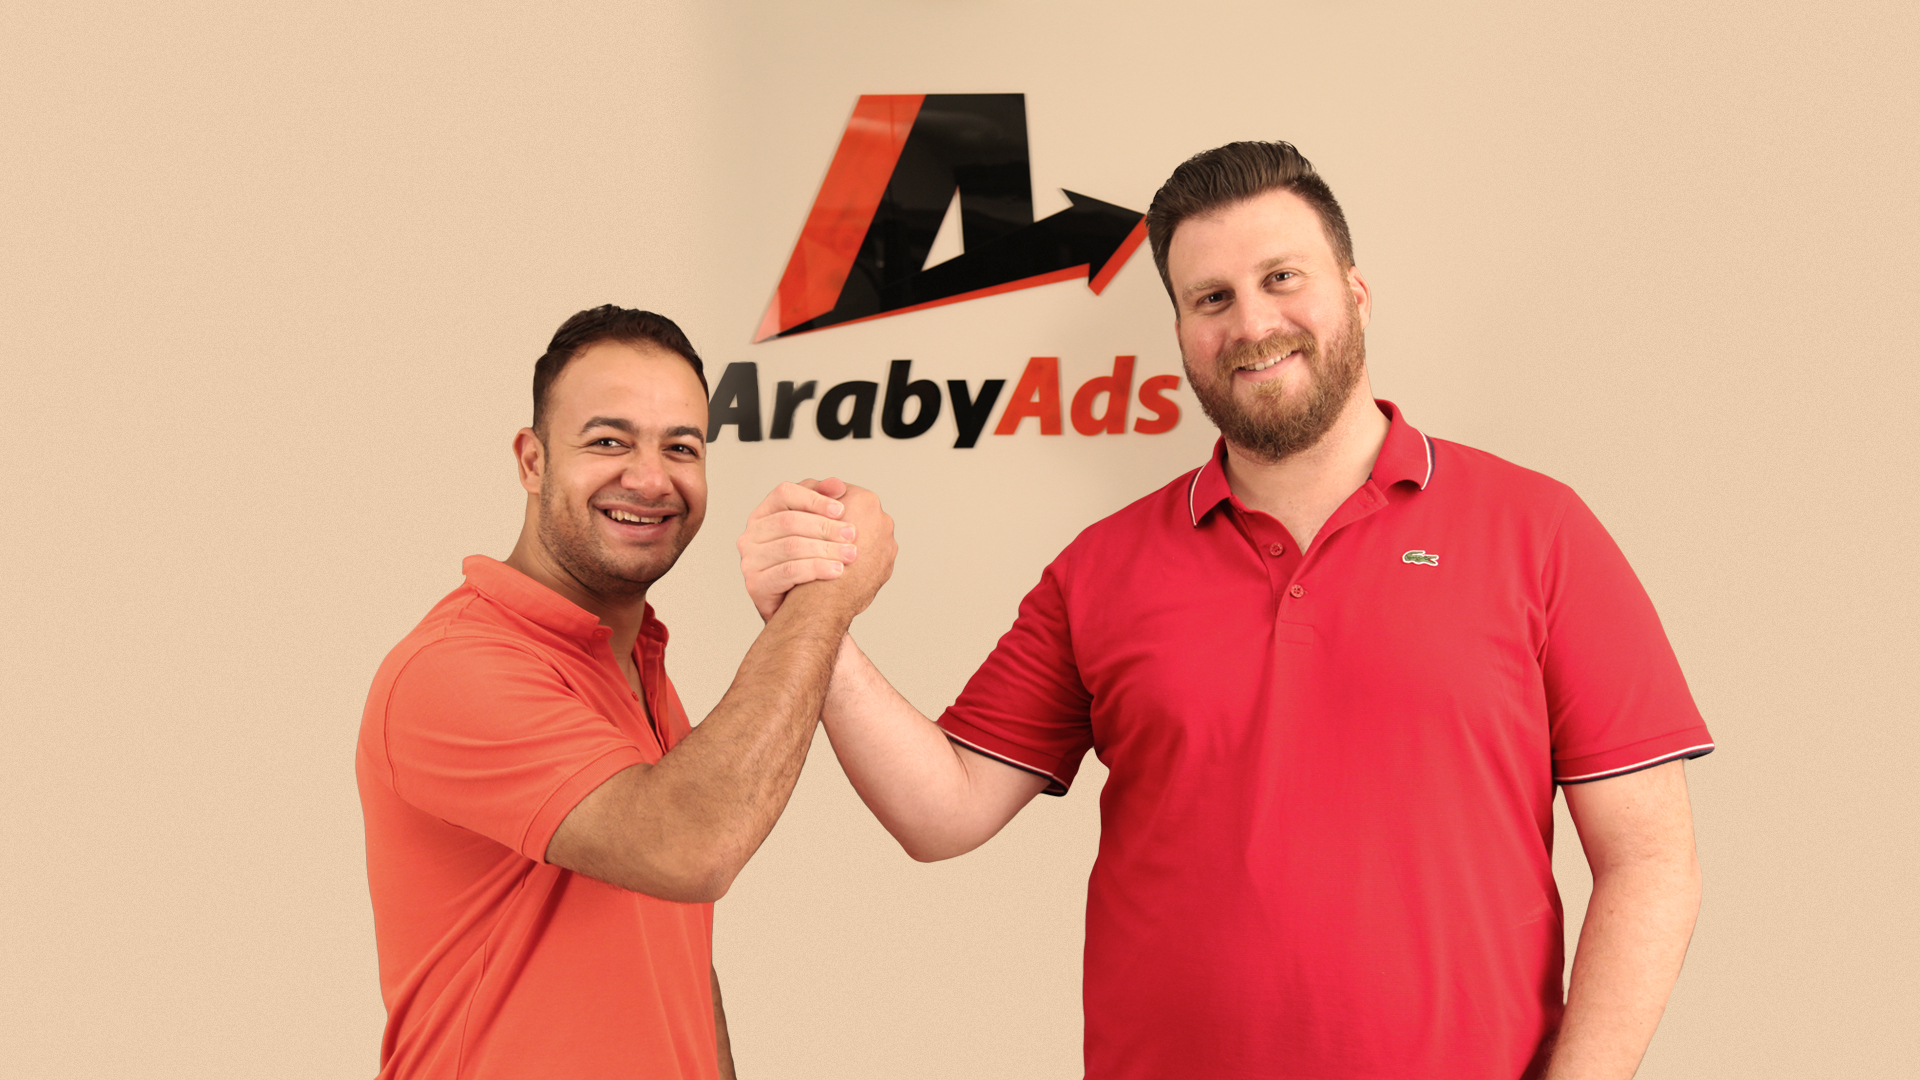 ArabyAds secures USD 6.5 Million in funding from Equitrust, the investment arm of Choueiri Group